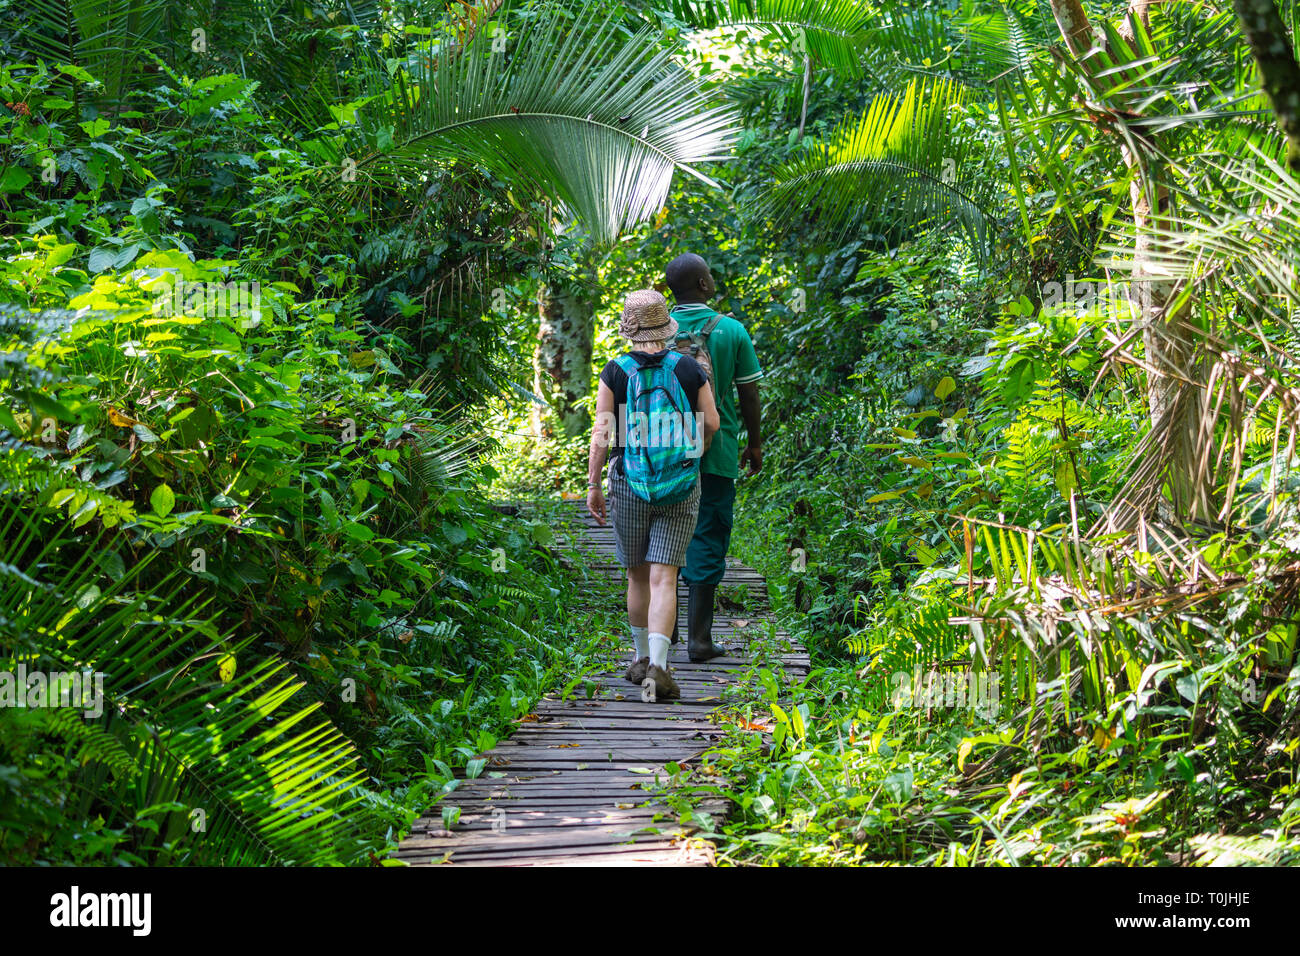 Guided walk in Bigodi Wetland Sanctuary, a community-run nature reserve within the Kibale Forest National Park, South West Uganda, East Africa - Stock Image